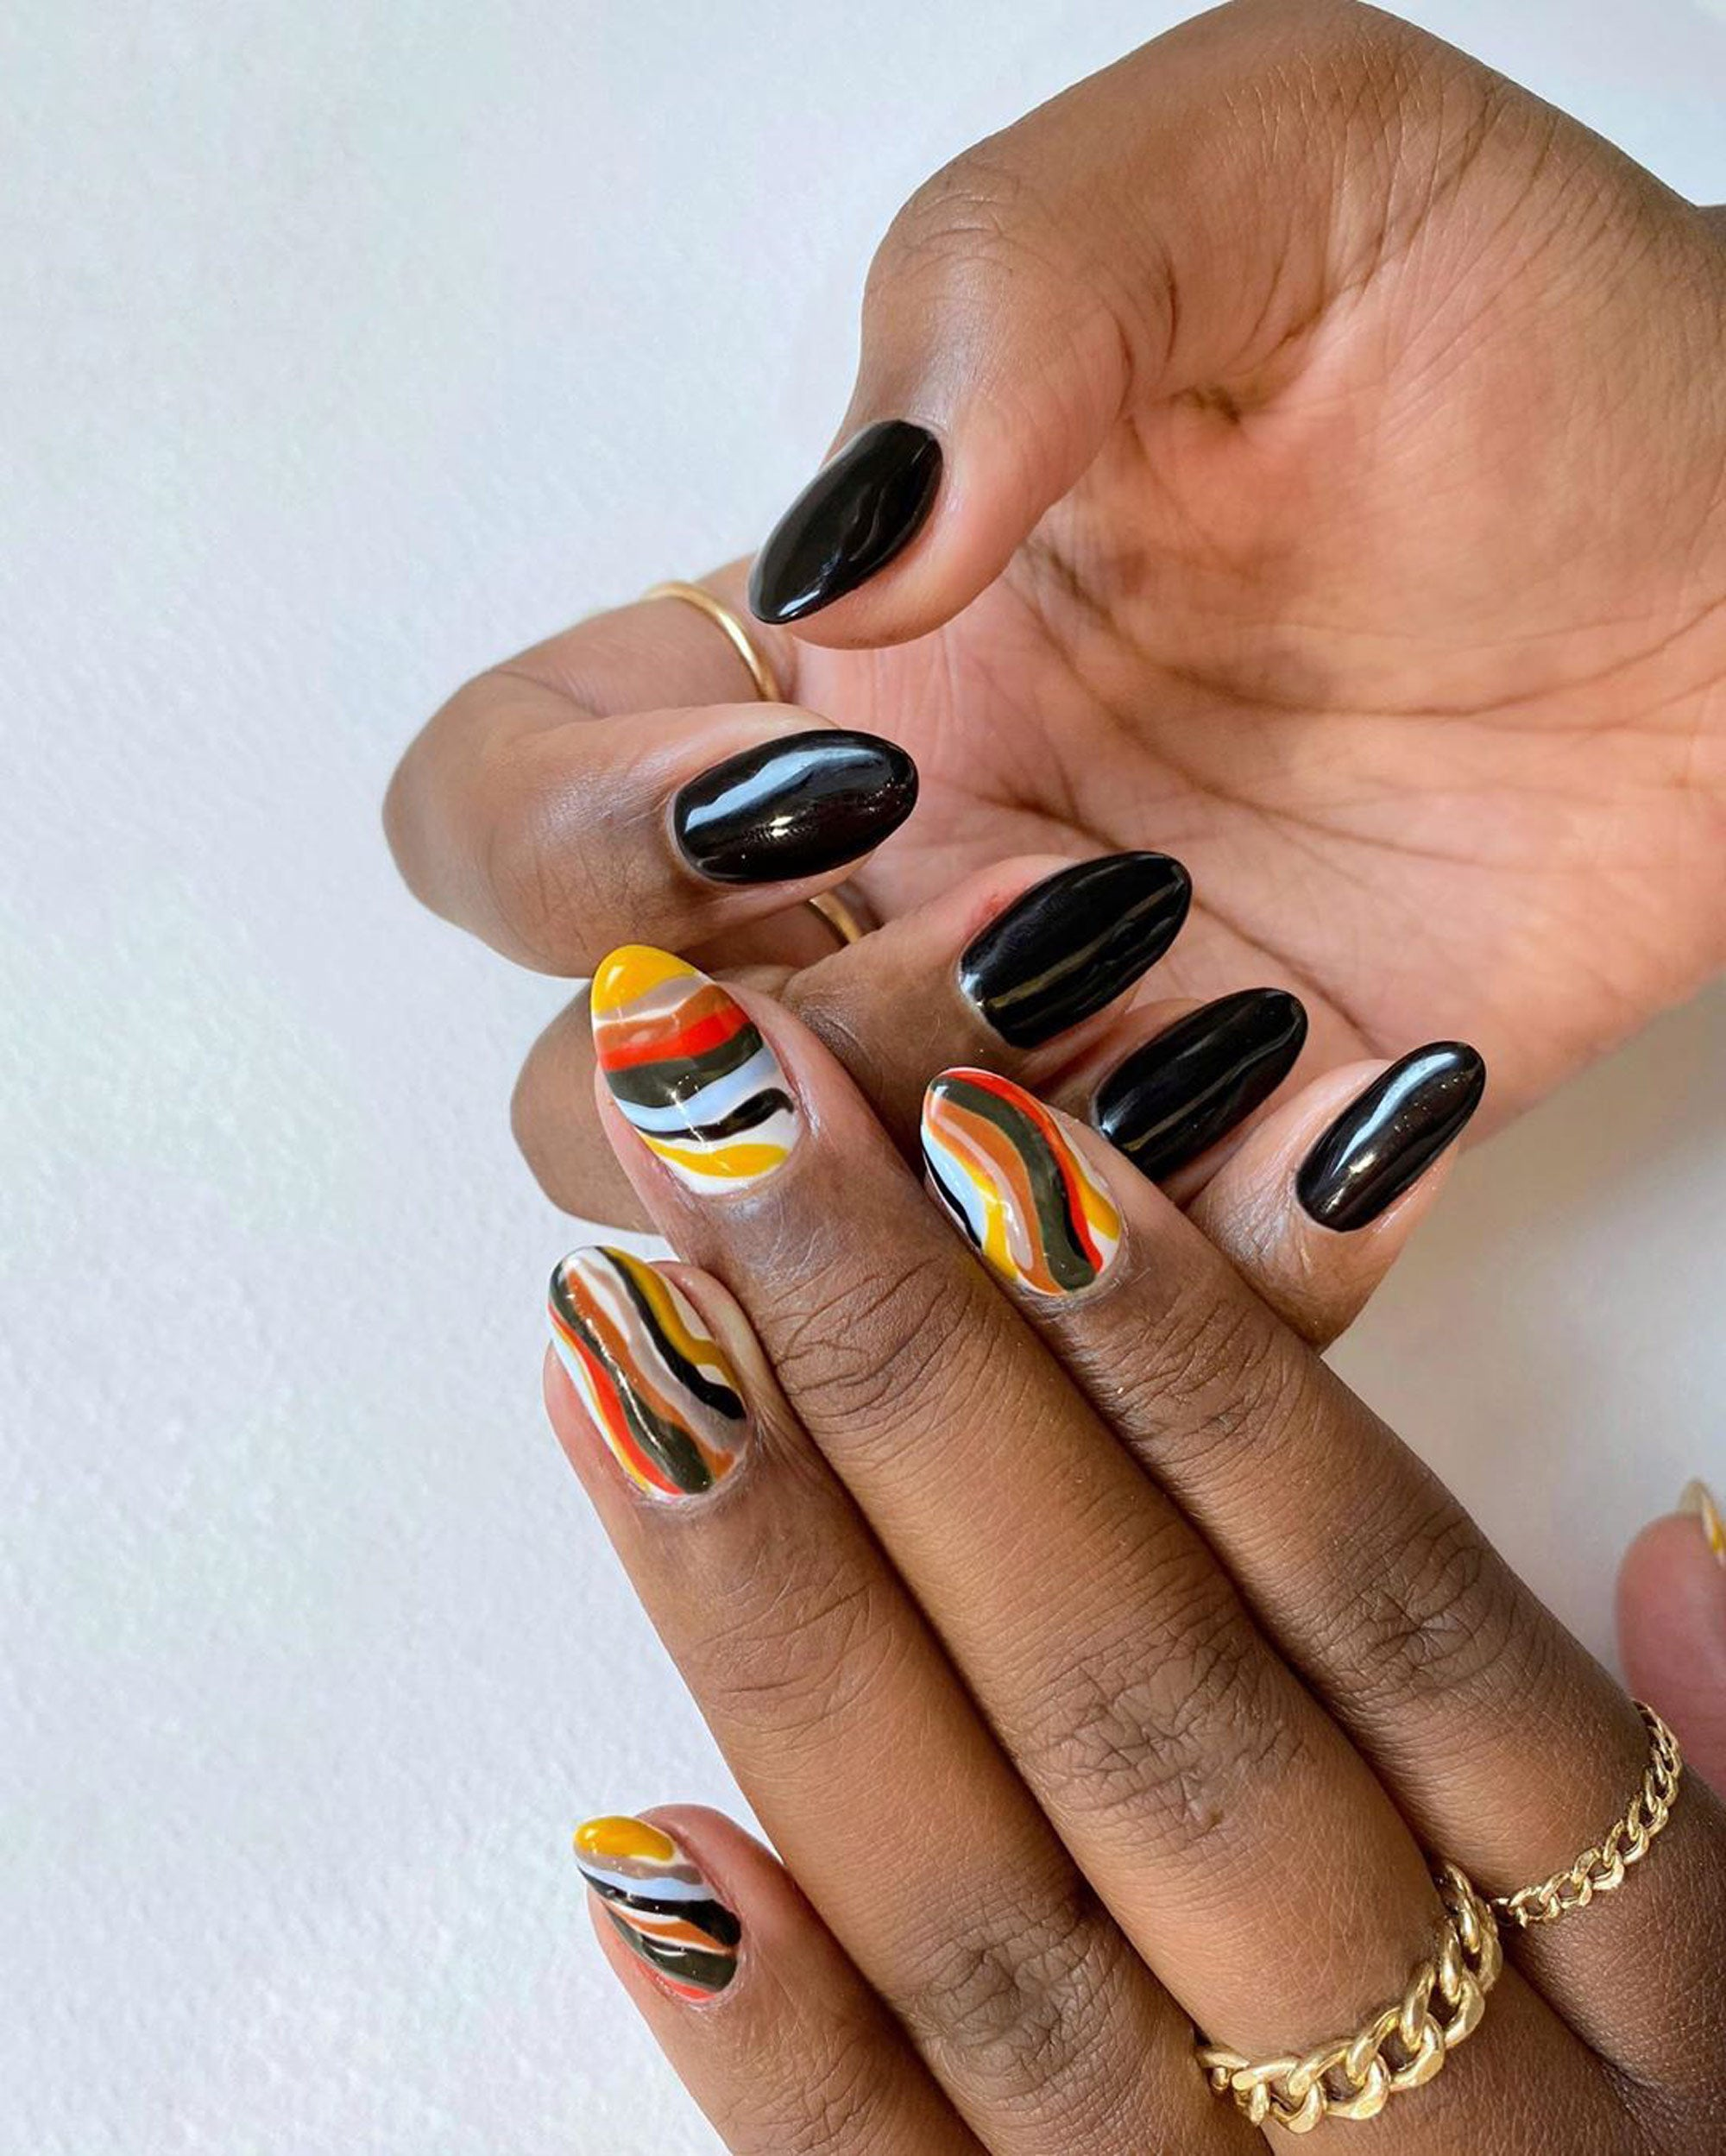 Summer Nail Trends 2020 Predicted By Top Manicurists